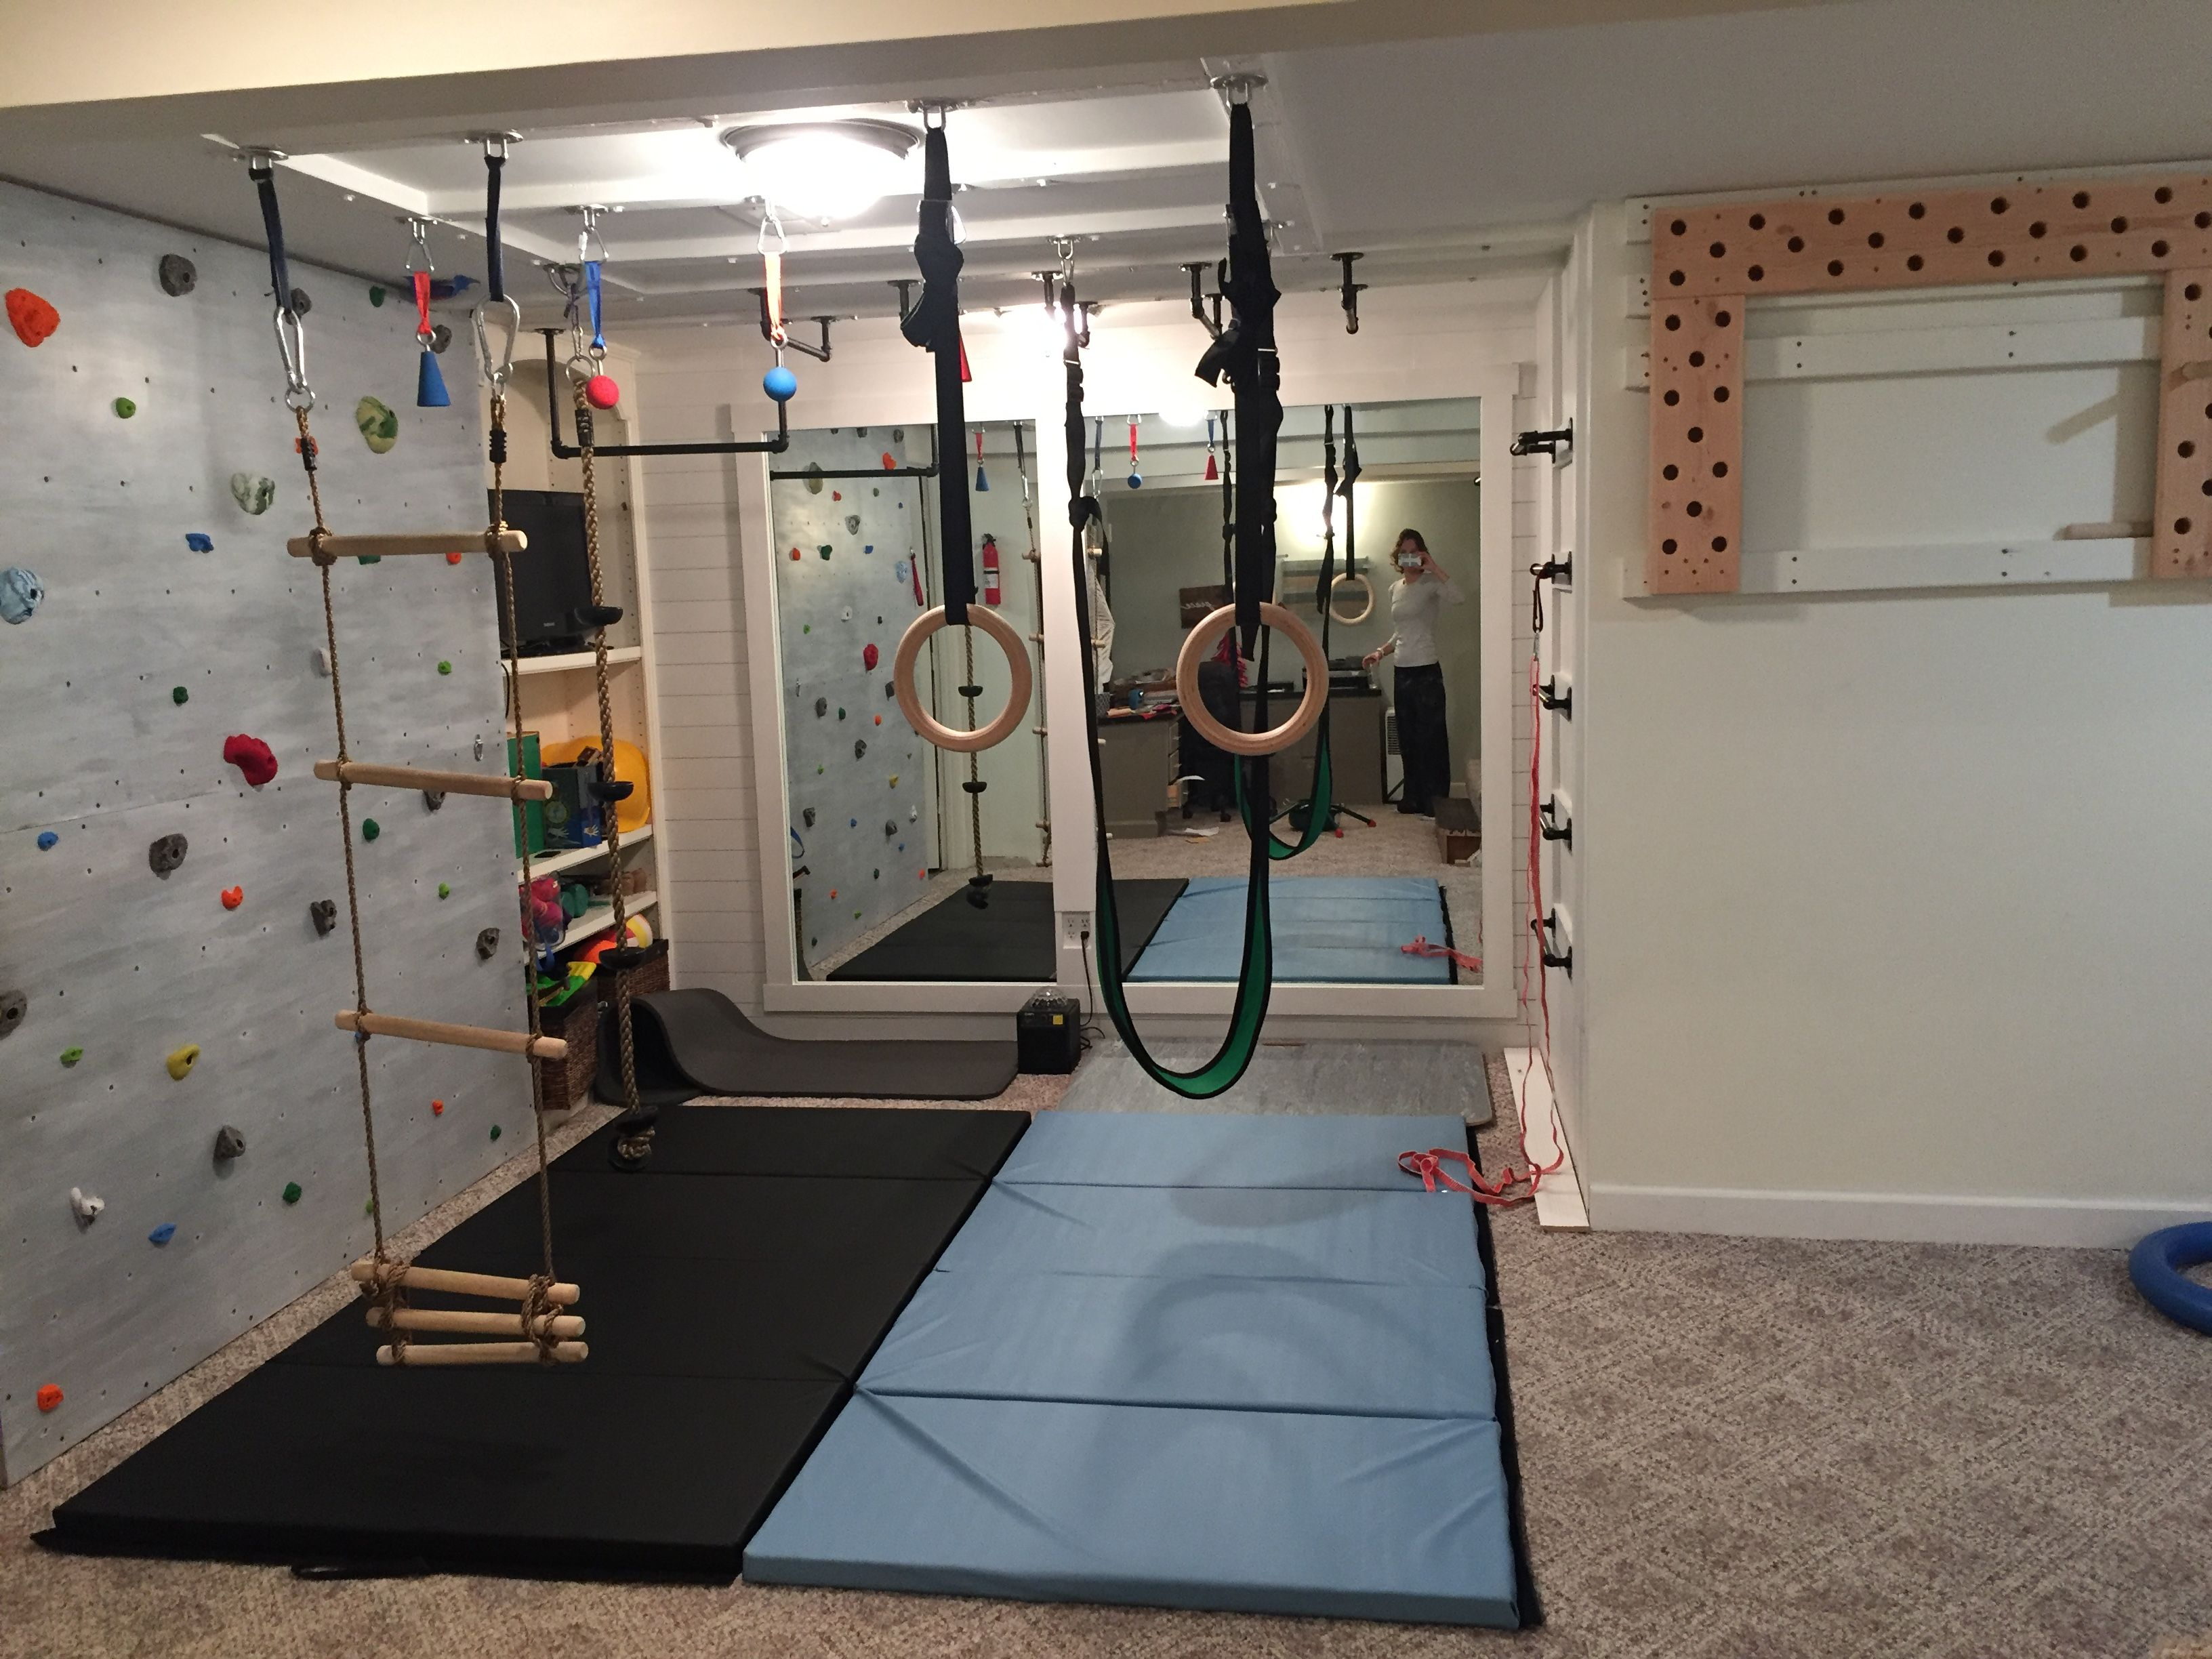 Indoor Basement Playground Ninja Warrior Gym Climbing Wall